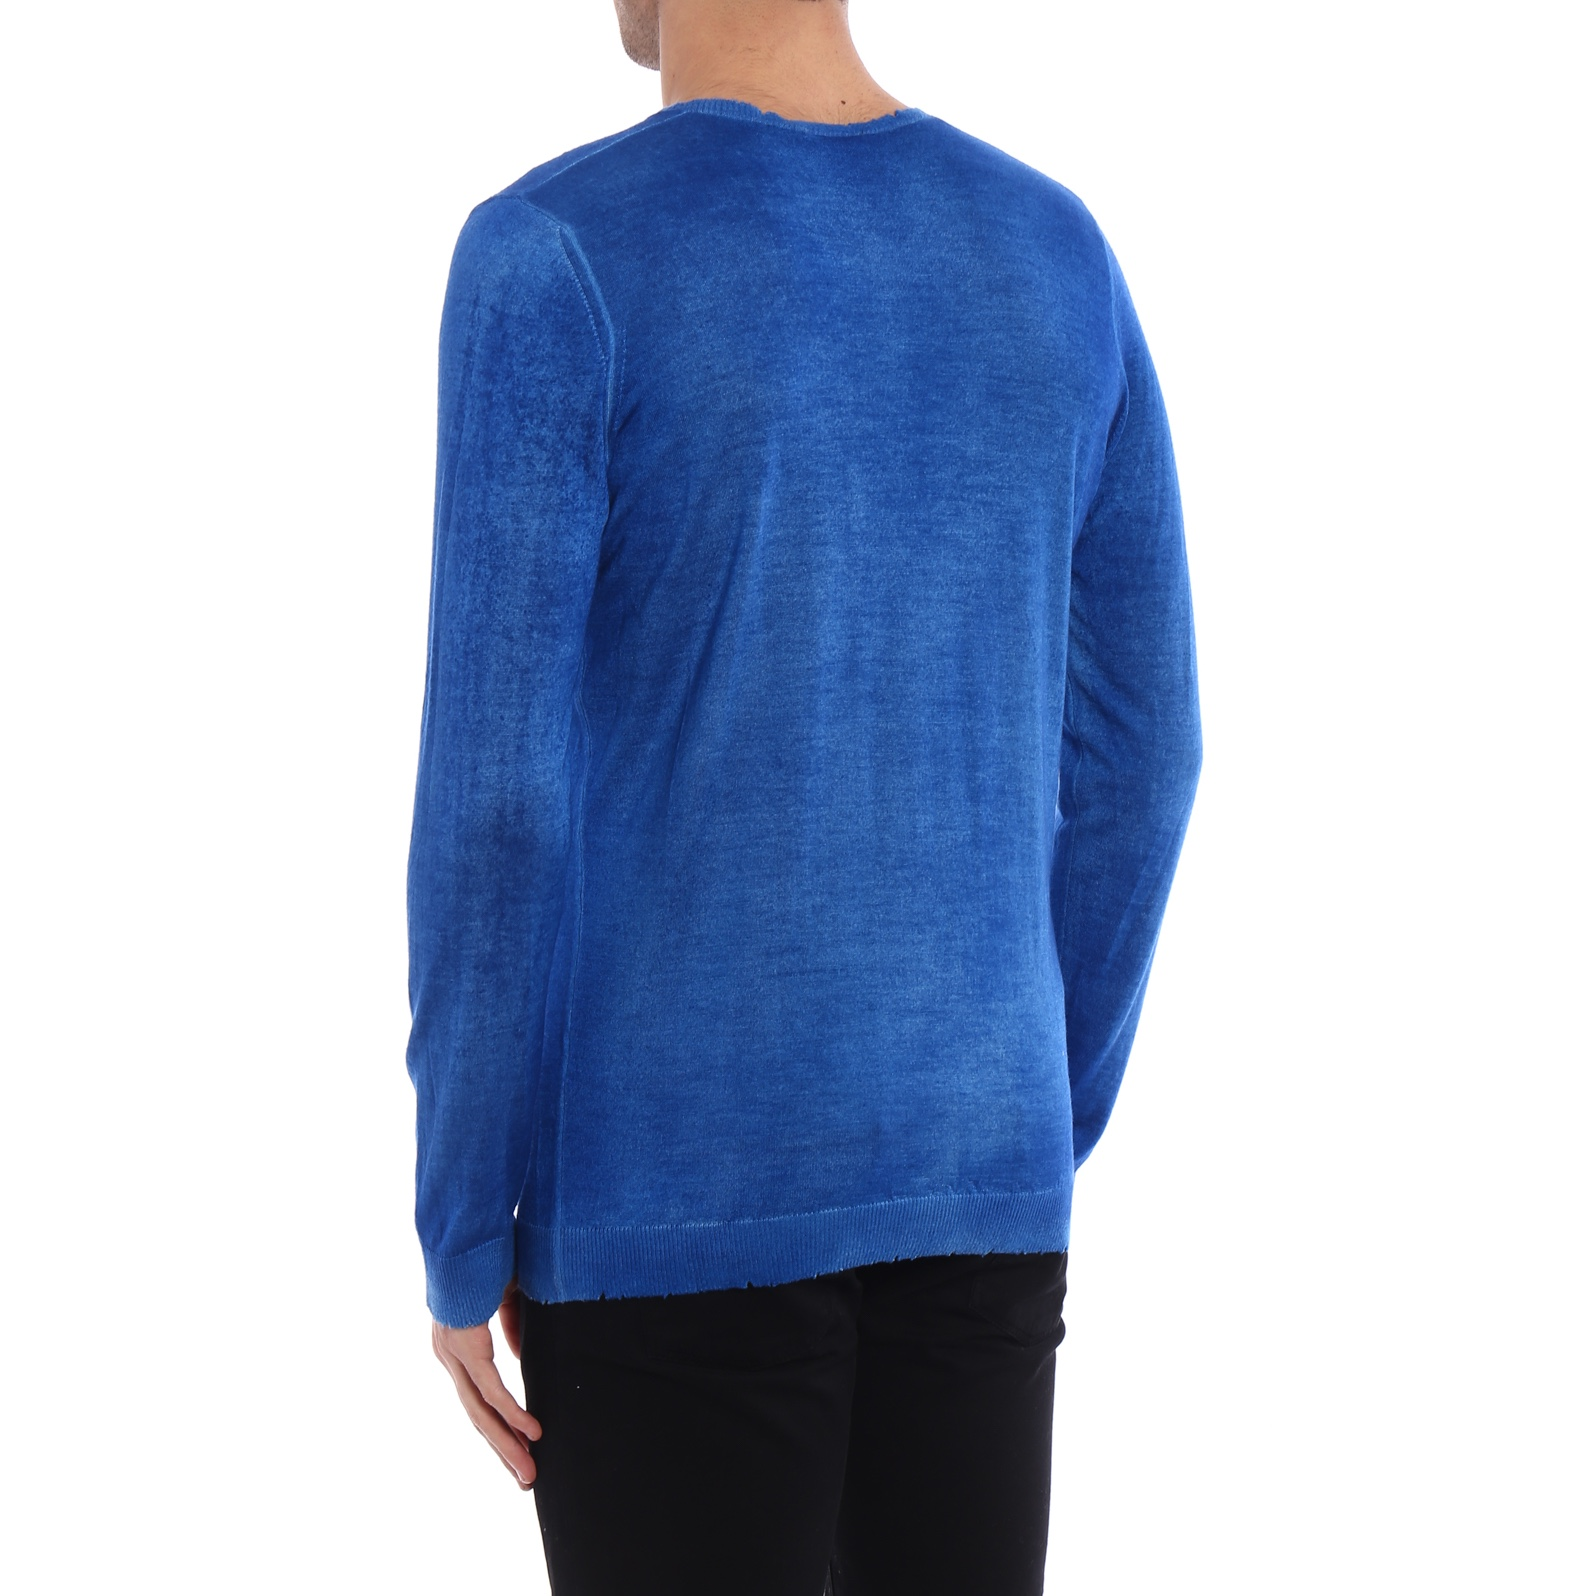 cashmere-and-silk-destroyed-sweater-shop-online-avant-toi-00000121334f00s014.jpg